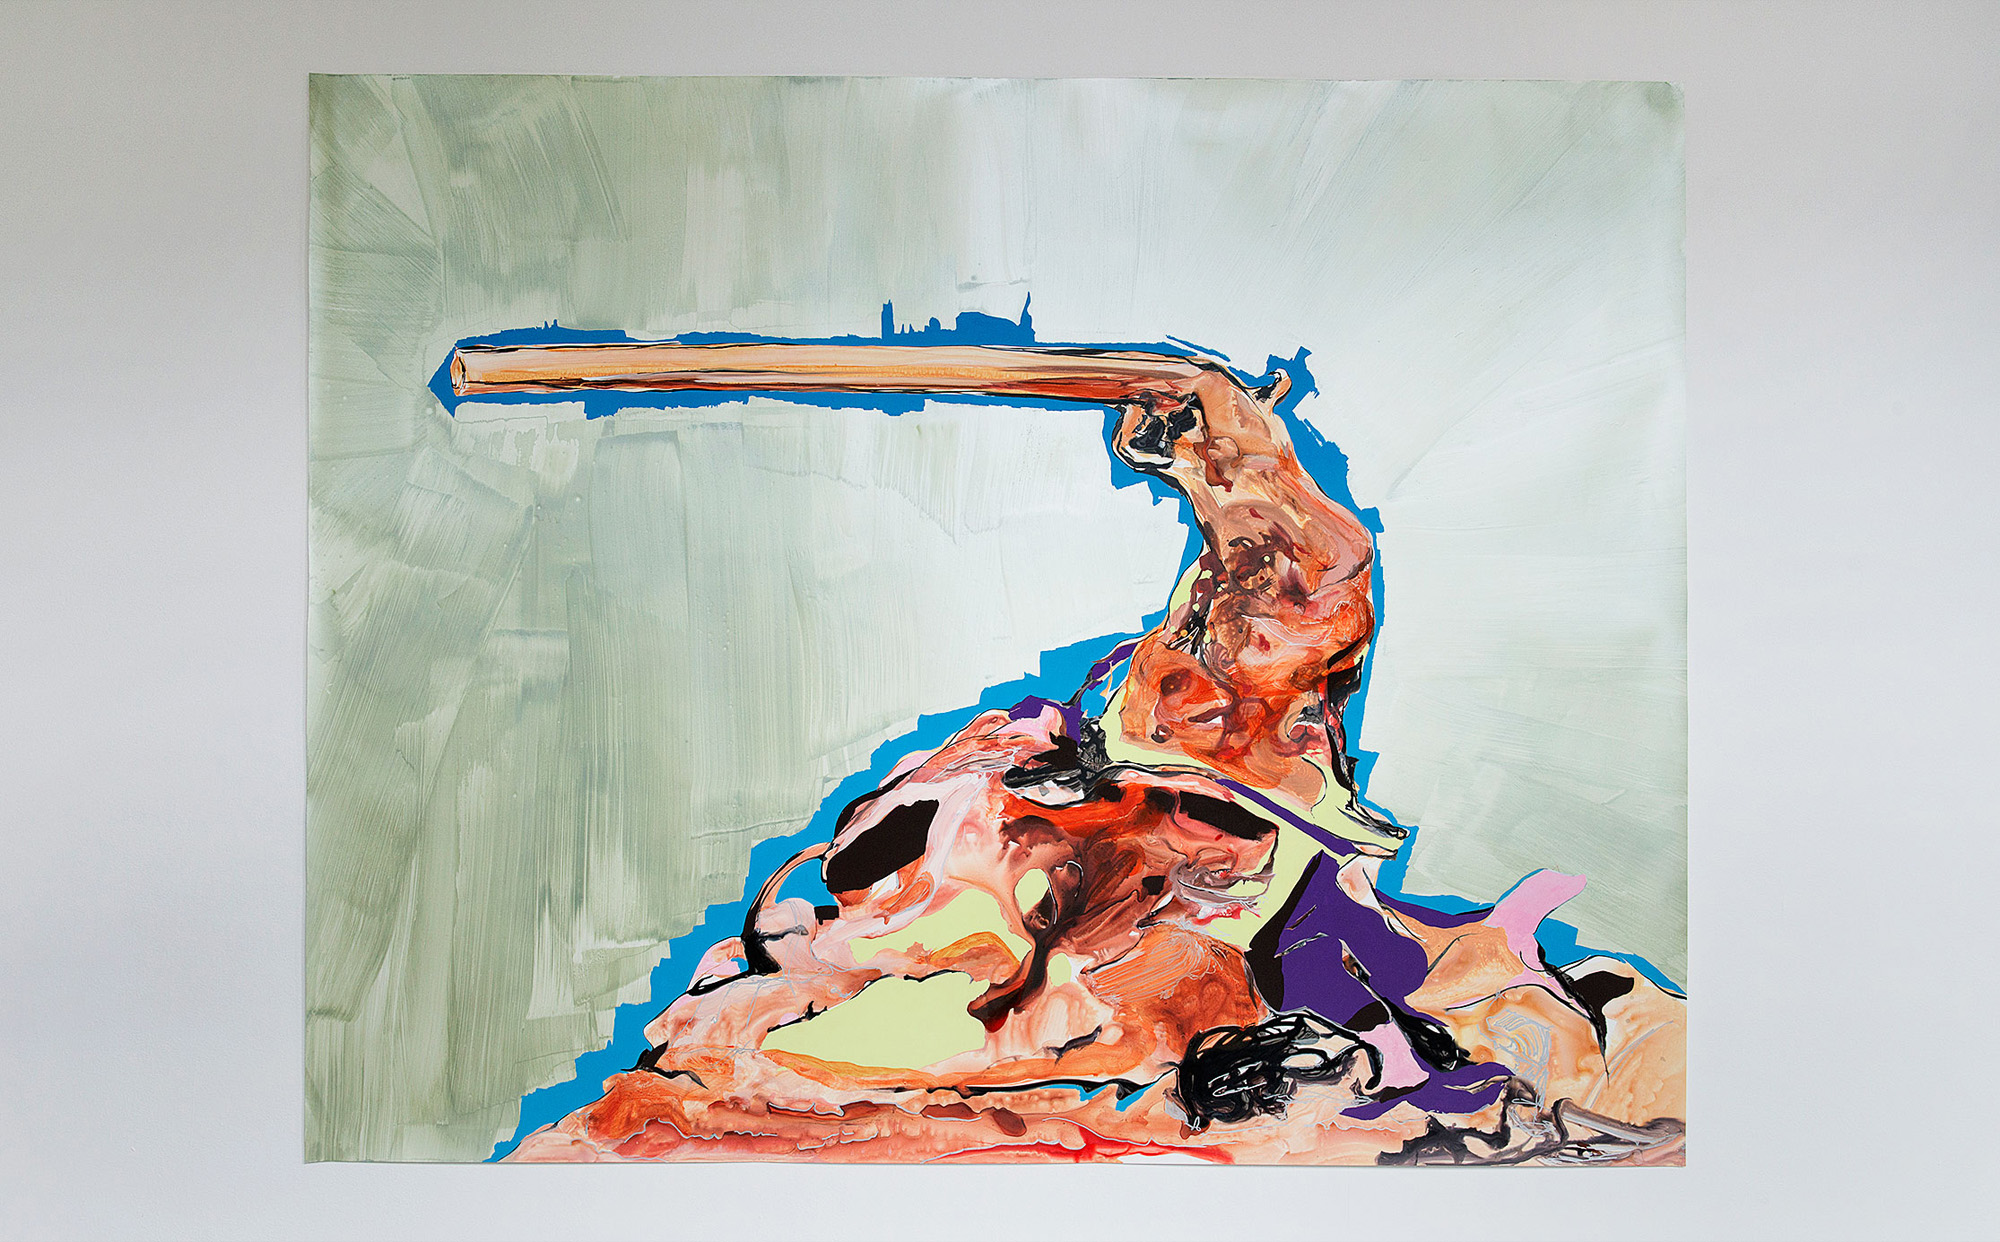 """Arm in Arm in Arm"", 2010; 153 x 195 cm"